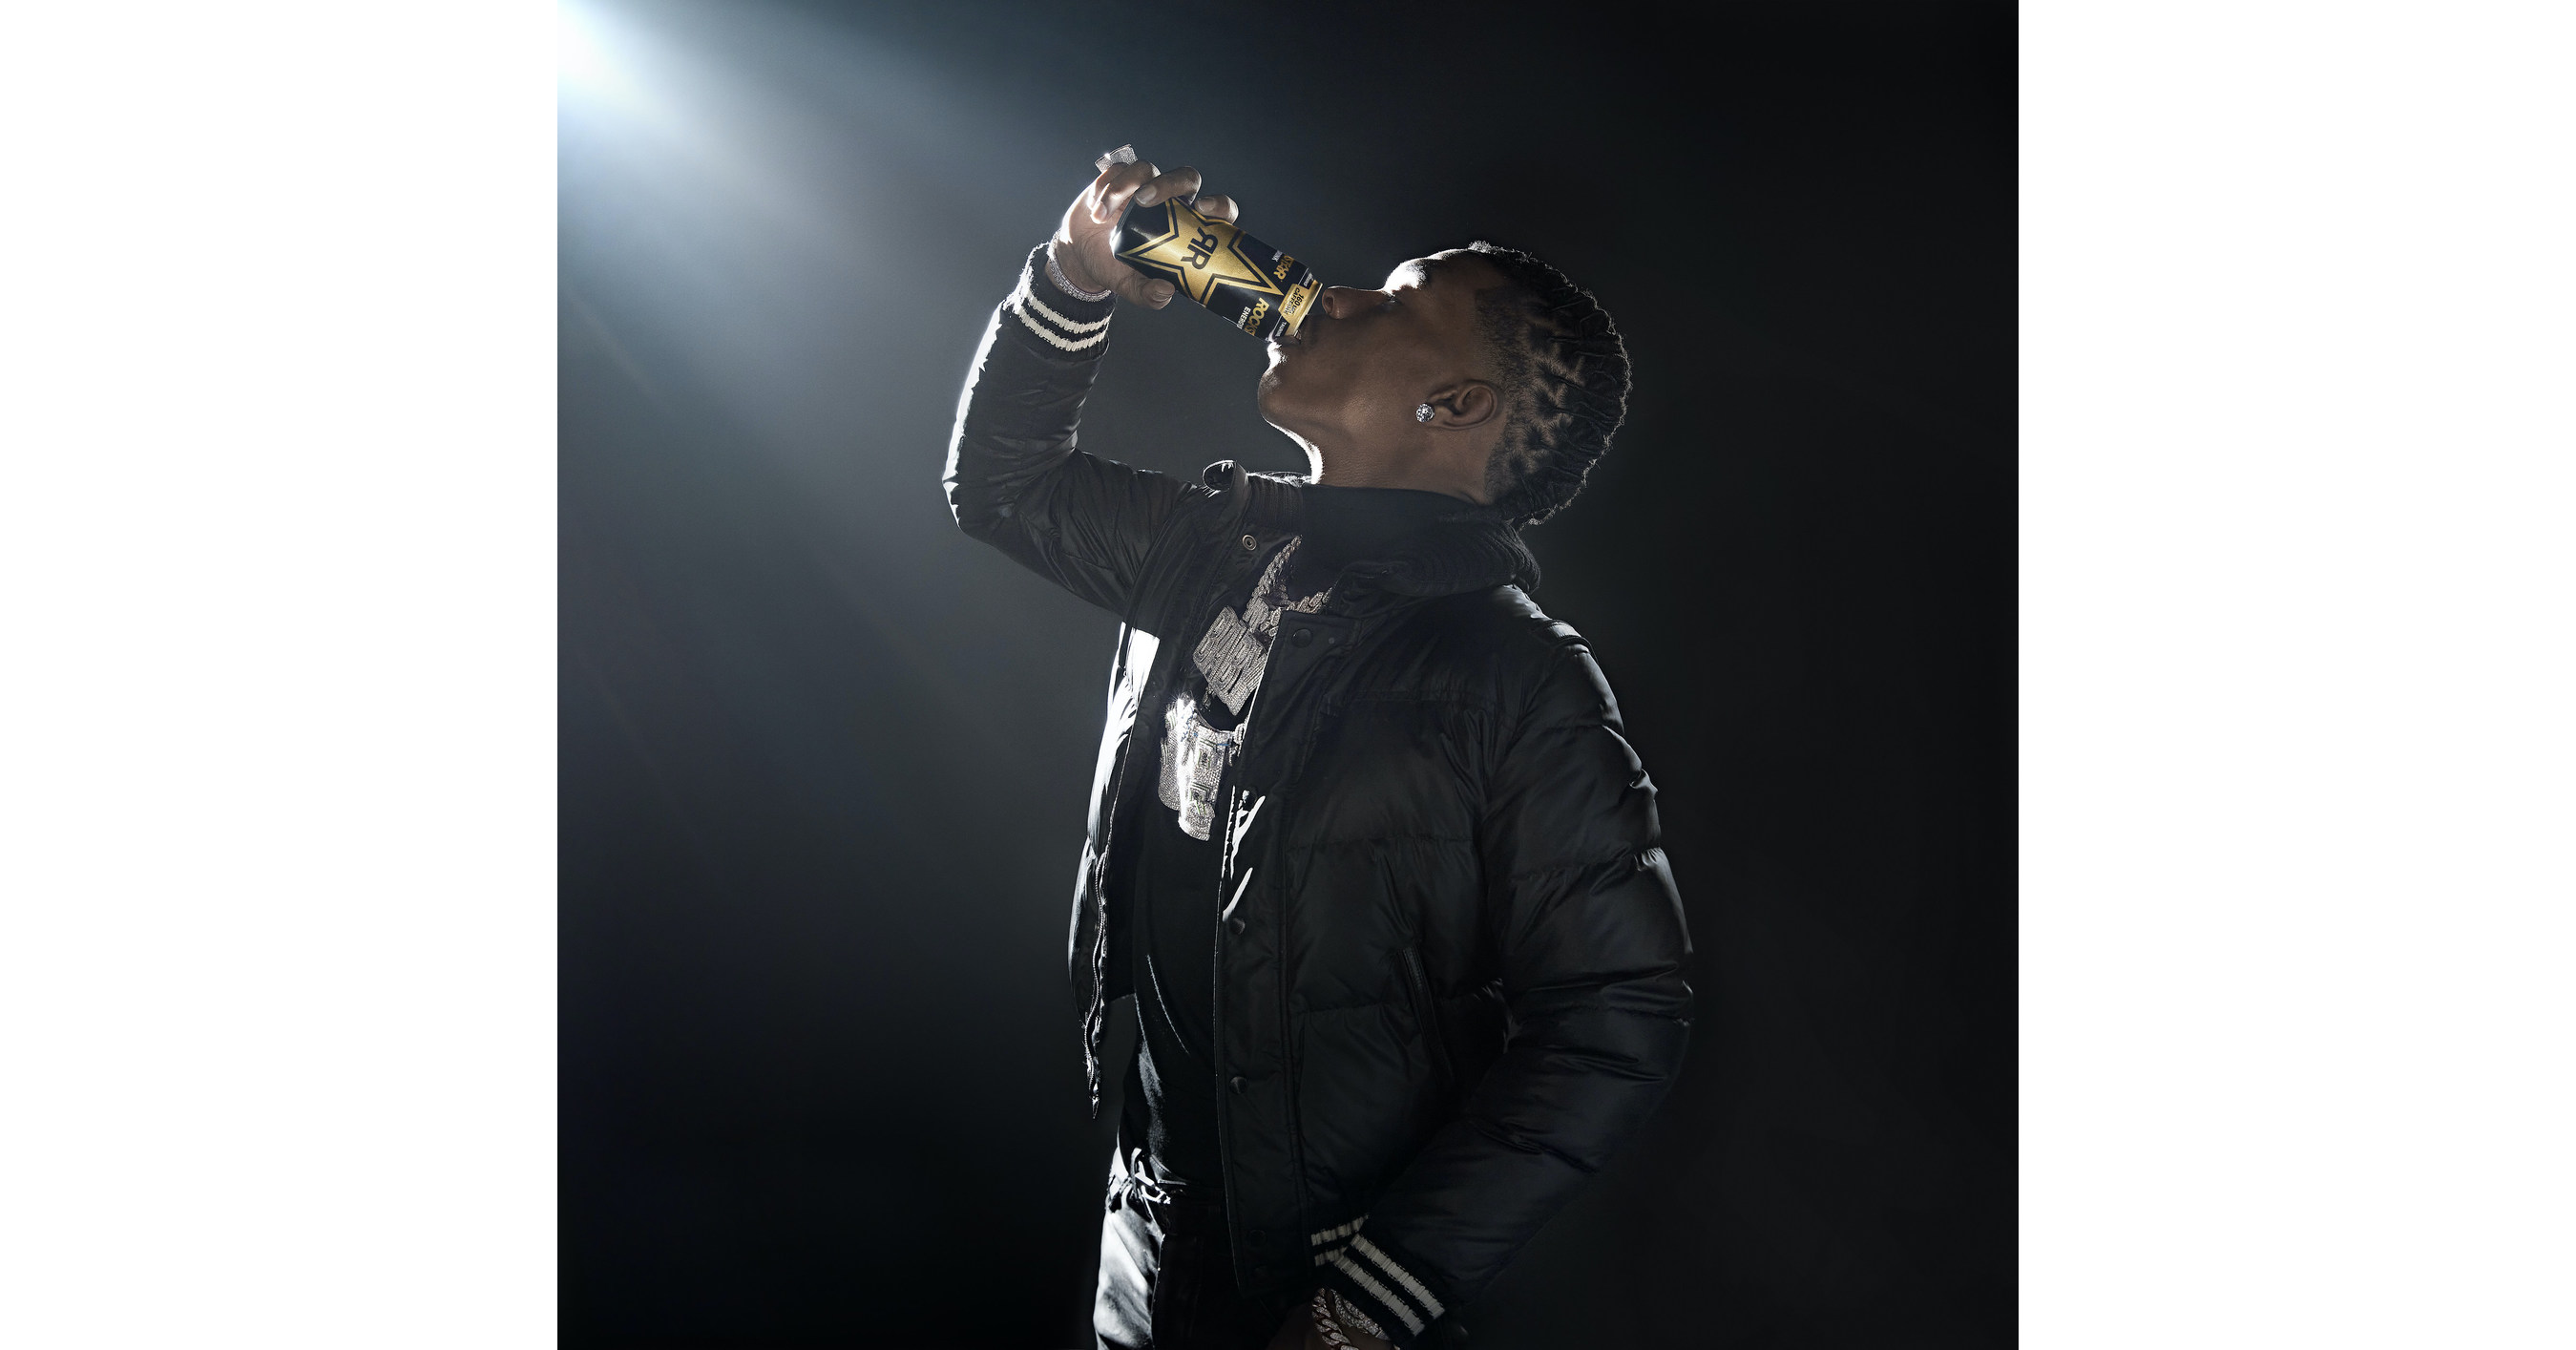 Rockstar Energy Drink Unveils New Look And Fresh Hustle In First Ever Super Bowl Ad